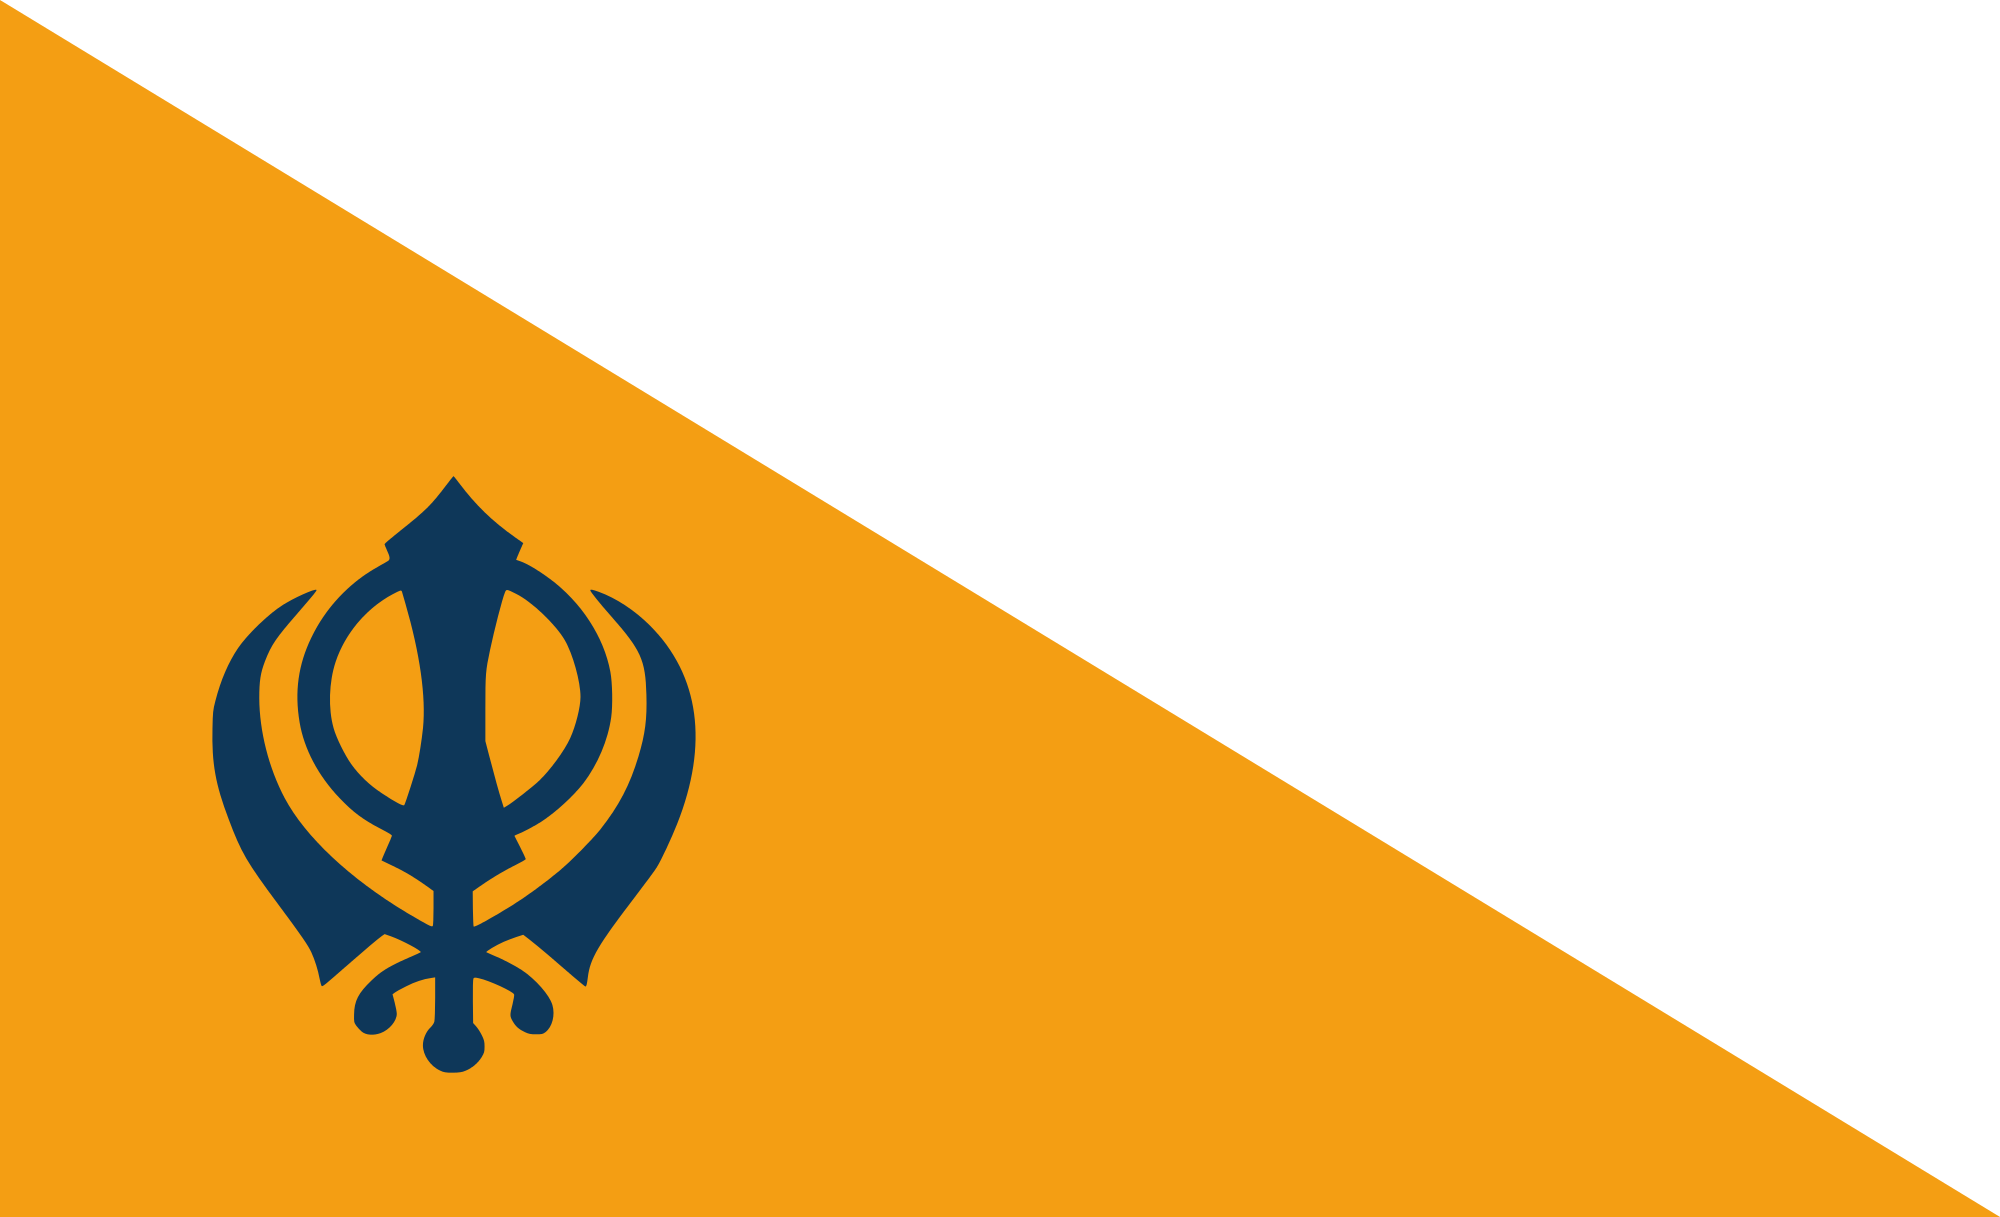 Nishan sahib wikipedia the nishan sahib is a sikh triangular flag made of cotton or silk cloth with a tassel at its end the word nishan means symbol and the flag is hoisted on biocorpaavc